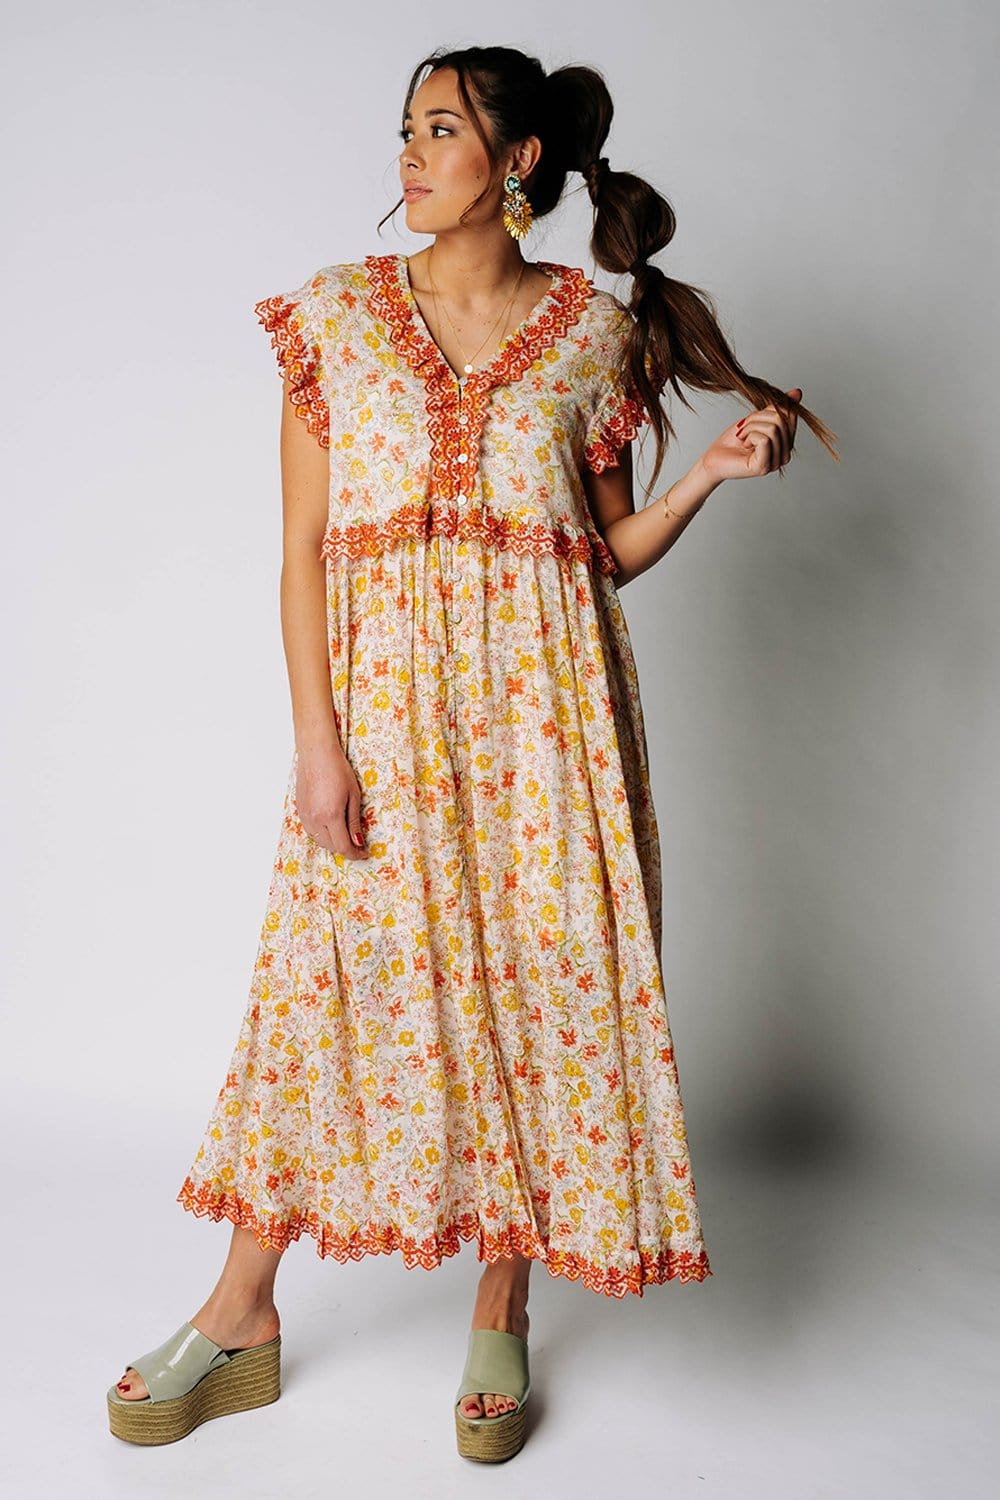 Clad and Cloth, Free People Milania Midi Dress in Confetti Combo, Free People, Dress.